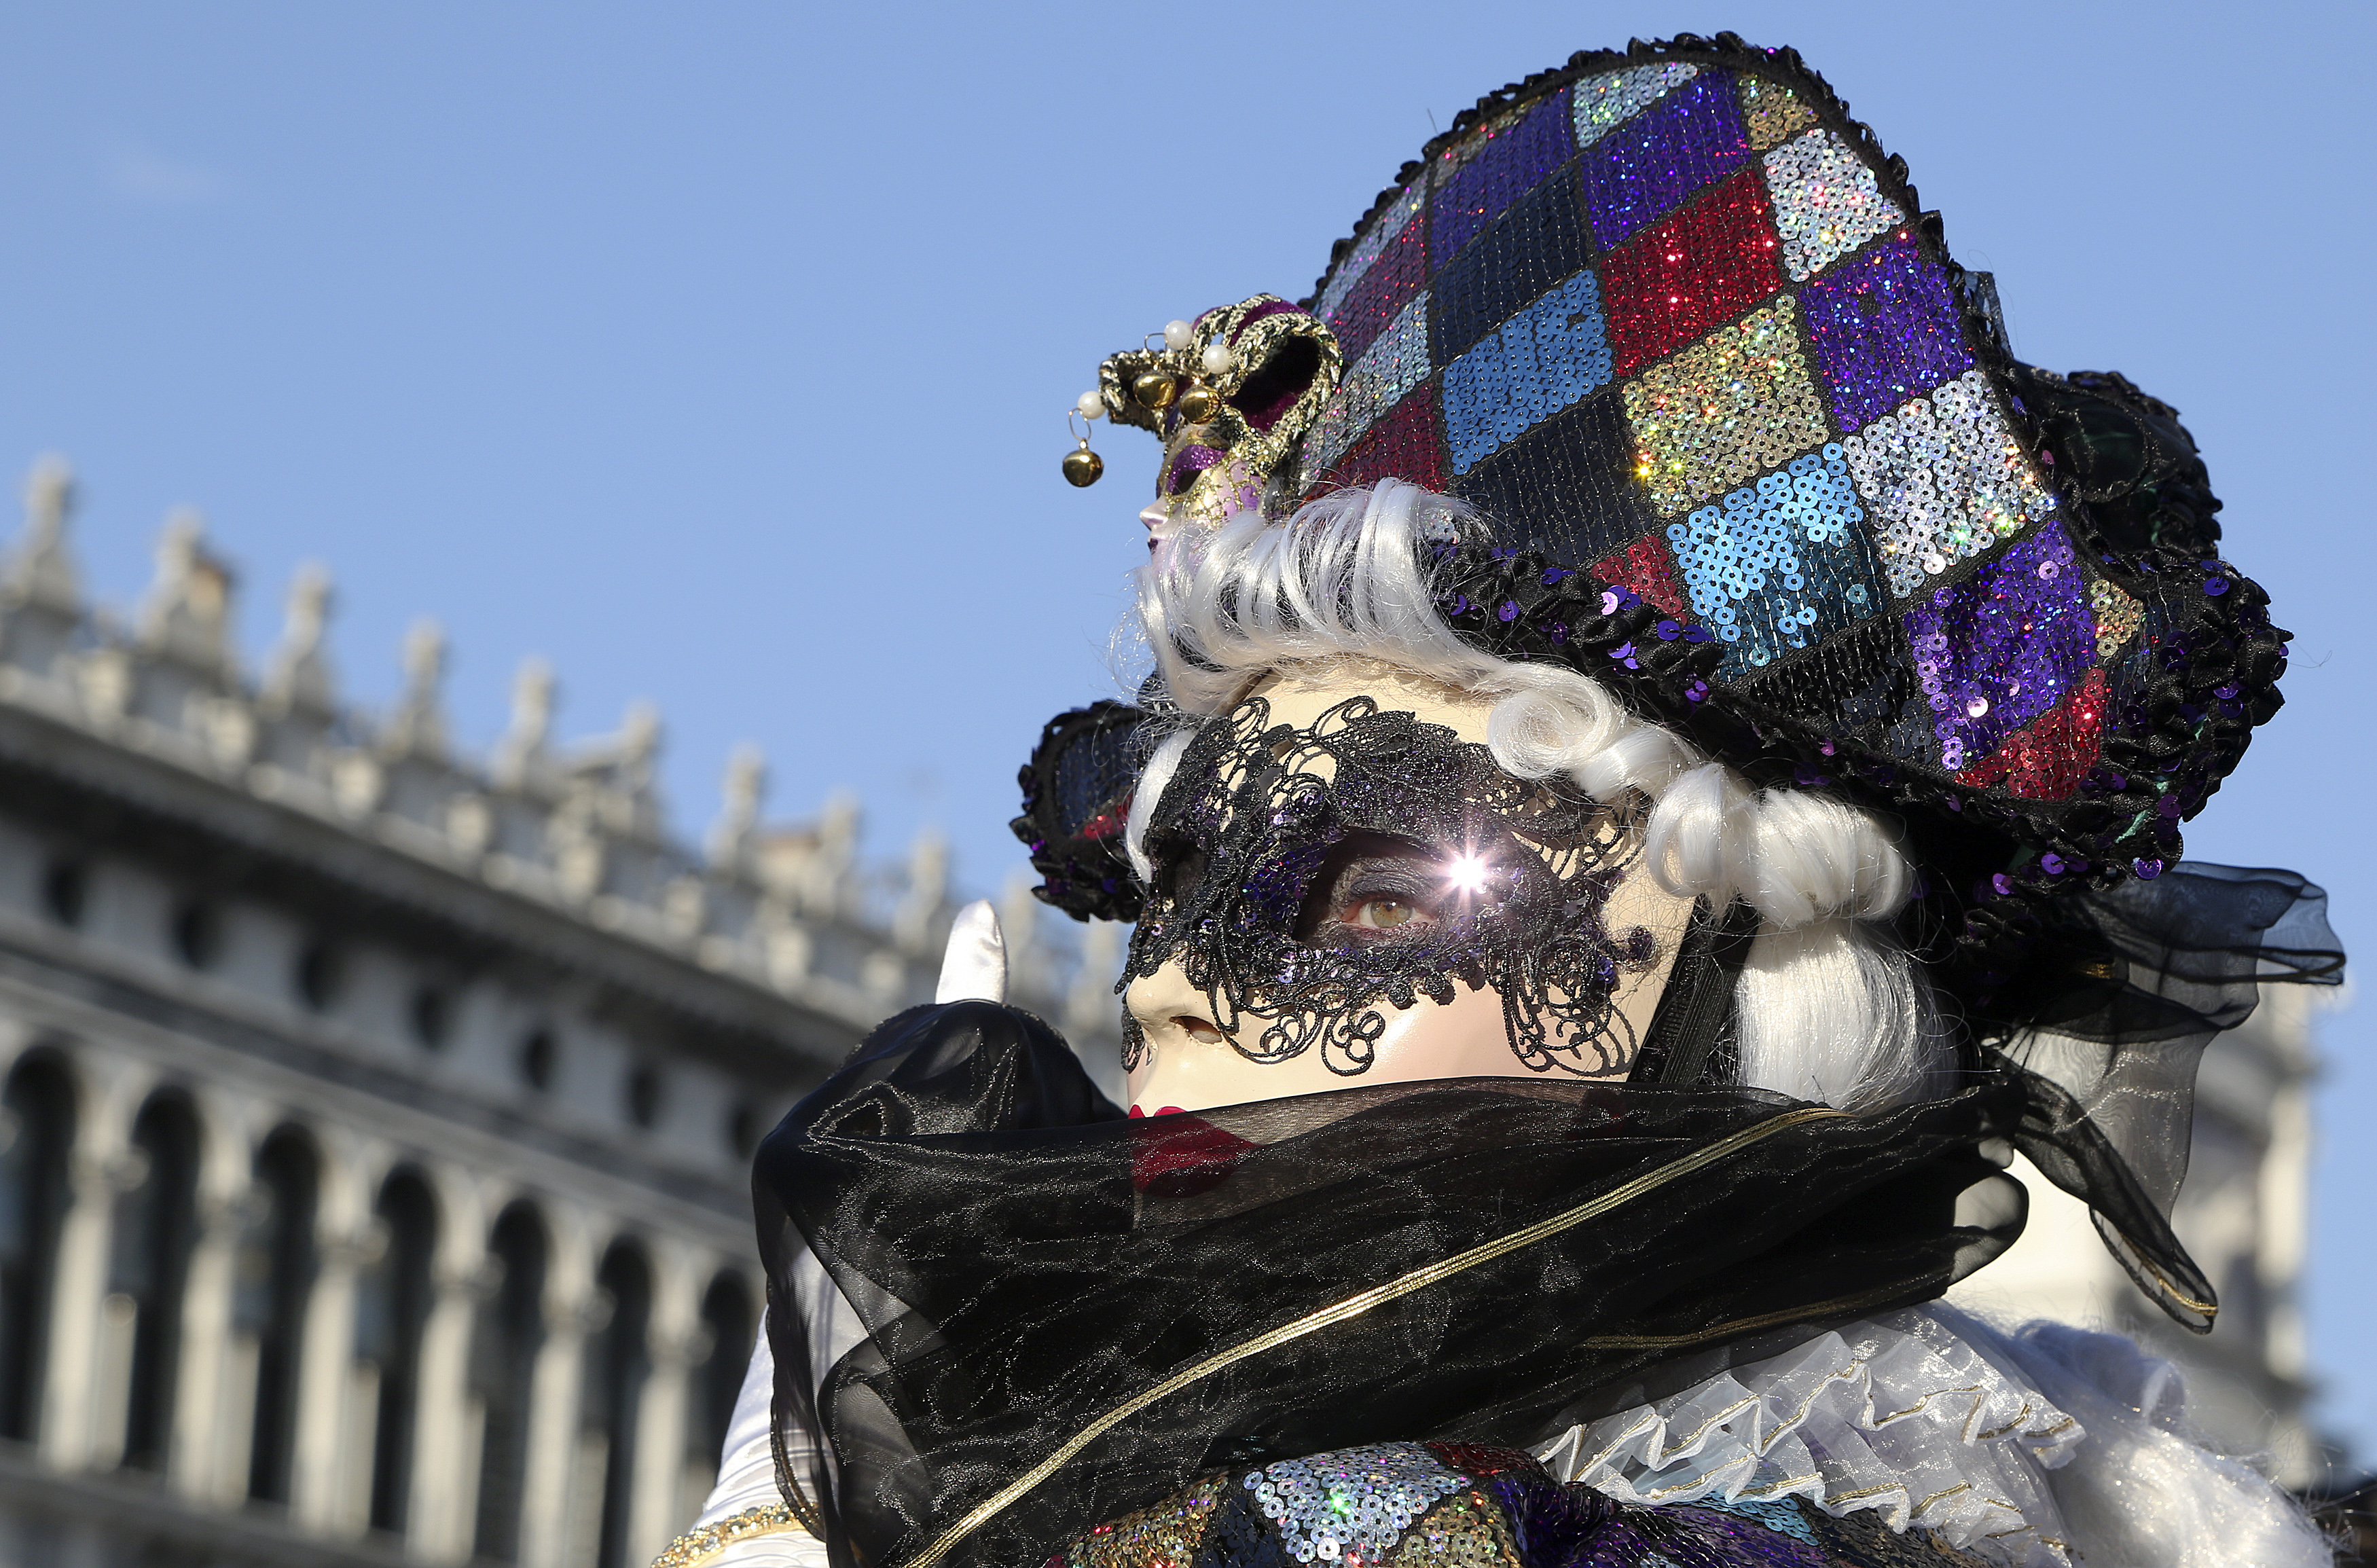 A masked reveler poses at Saint Mark's square during Carnival in Venice, February 8, 2015. Photo by Stefano Rellandini/REUTERS.